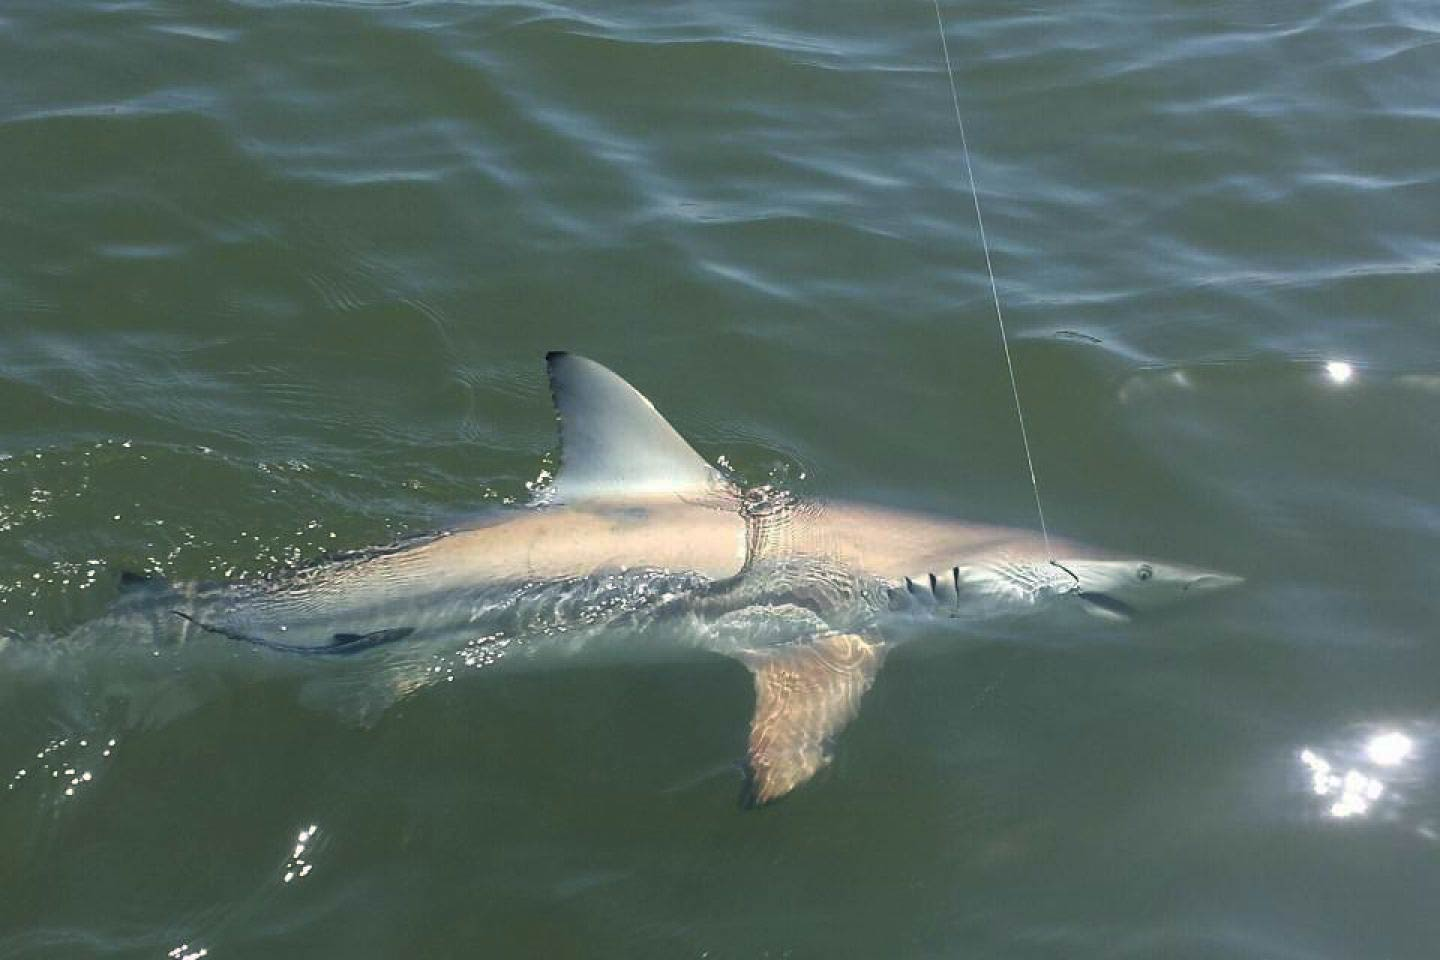 A Blacktip Shark on the end of a fishing line in the Ten Thousand Island's waters